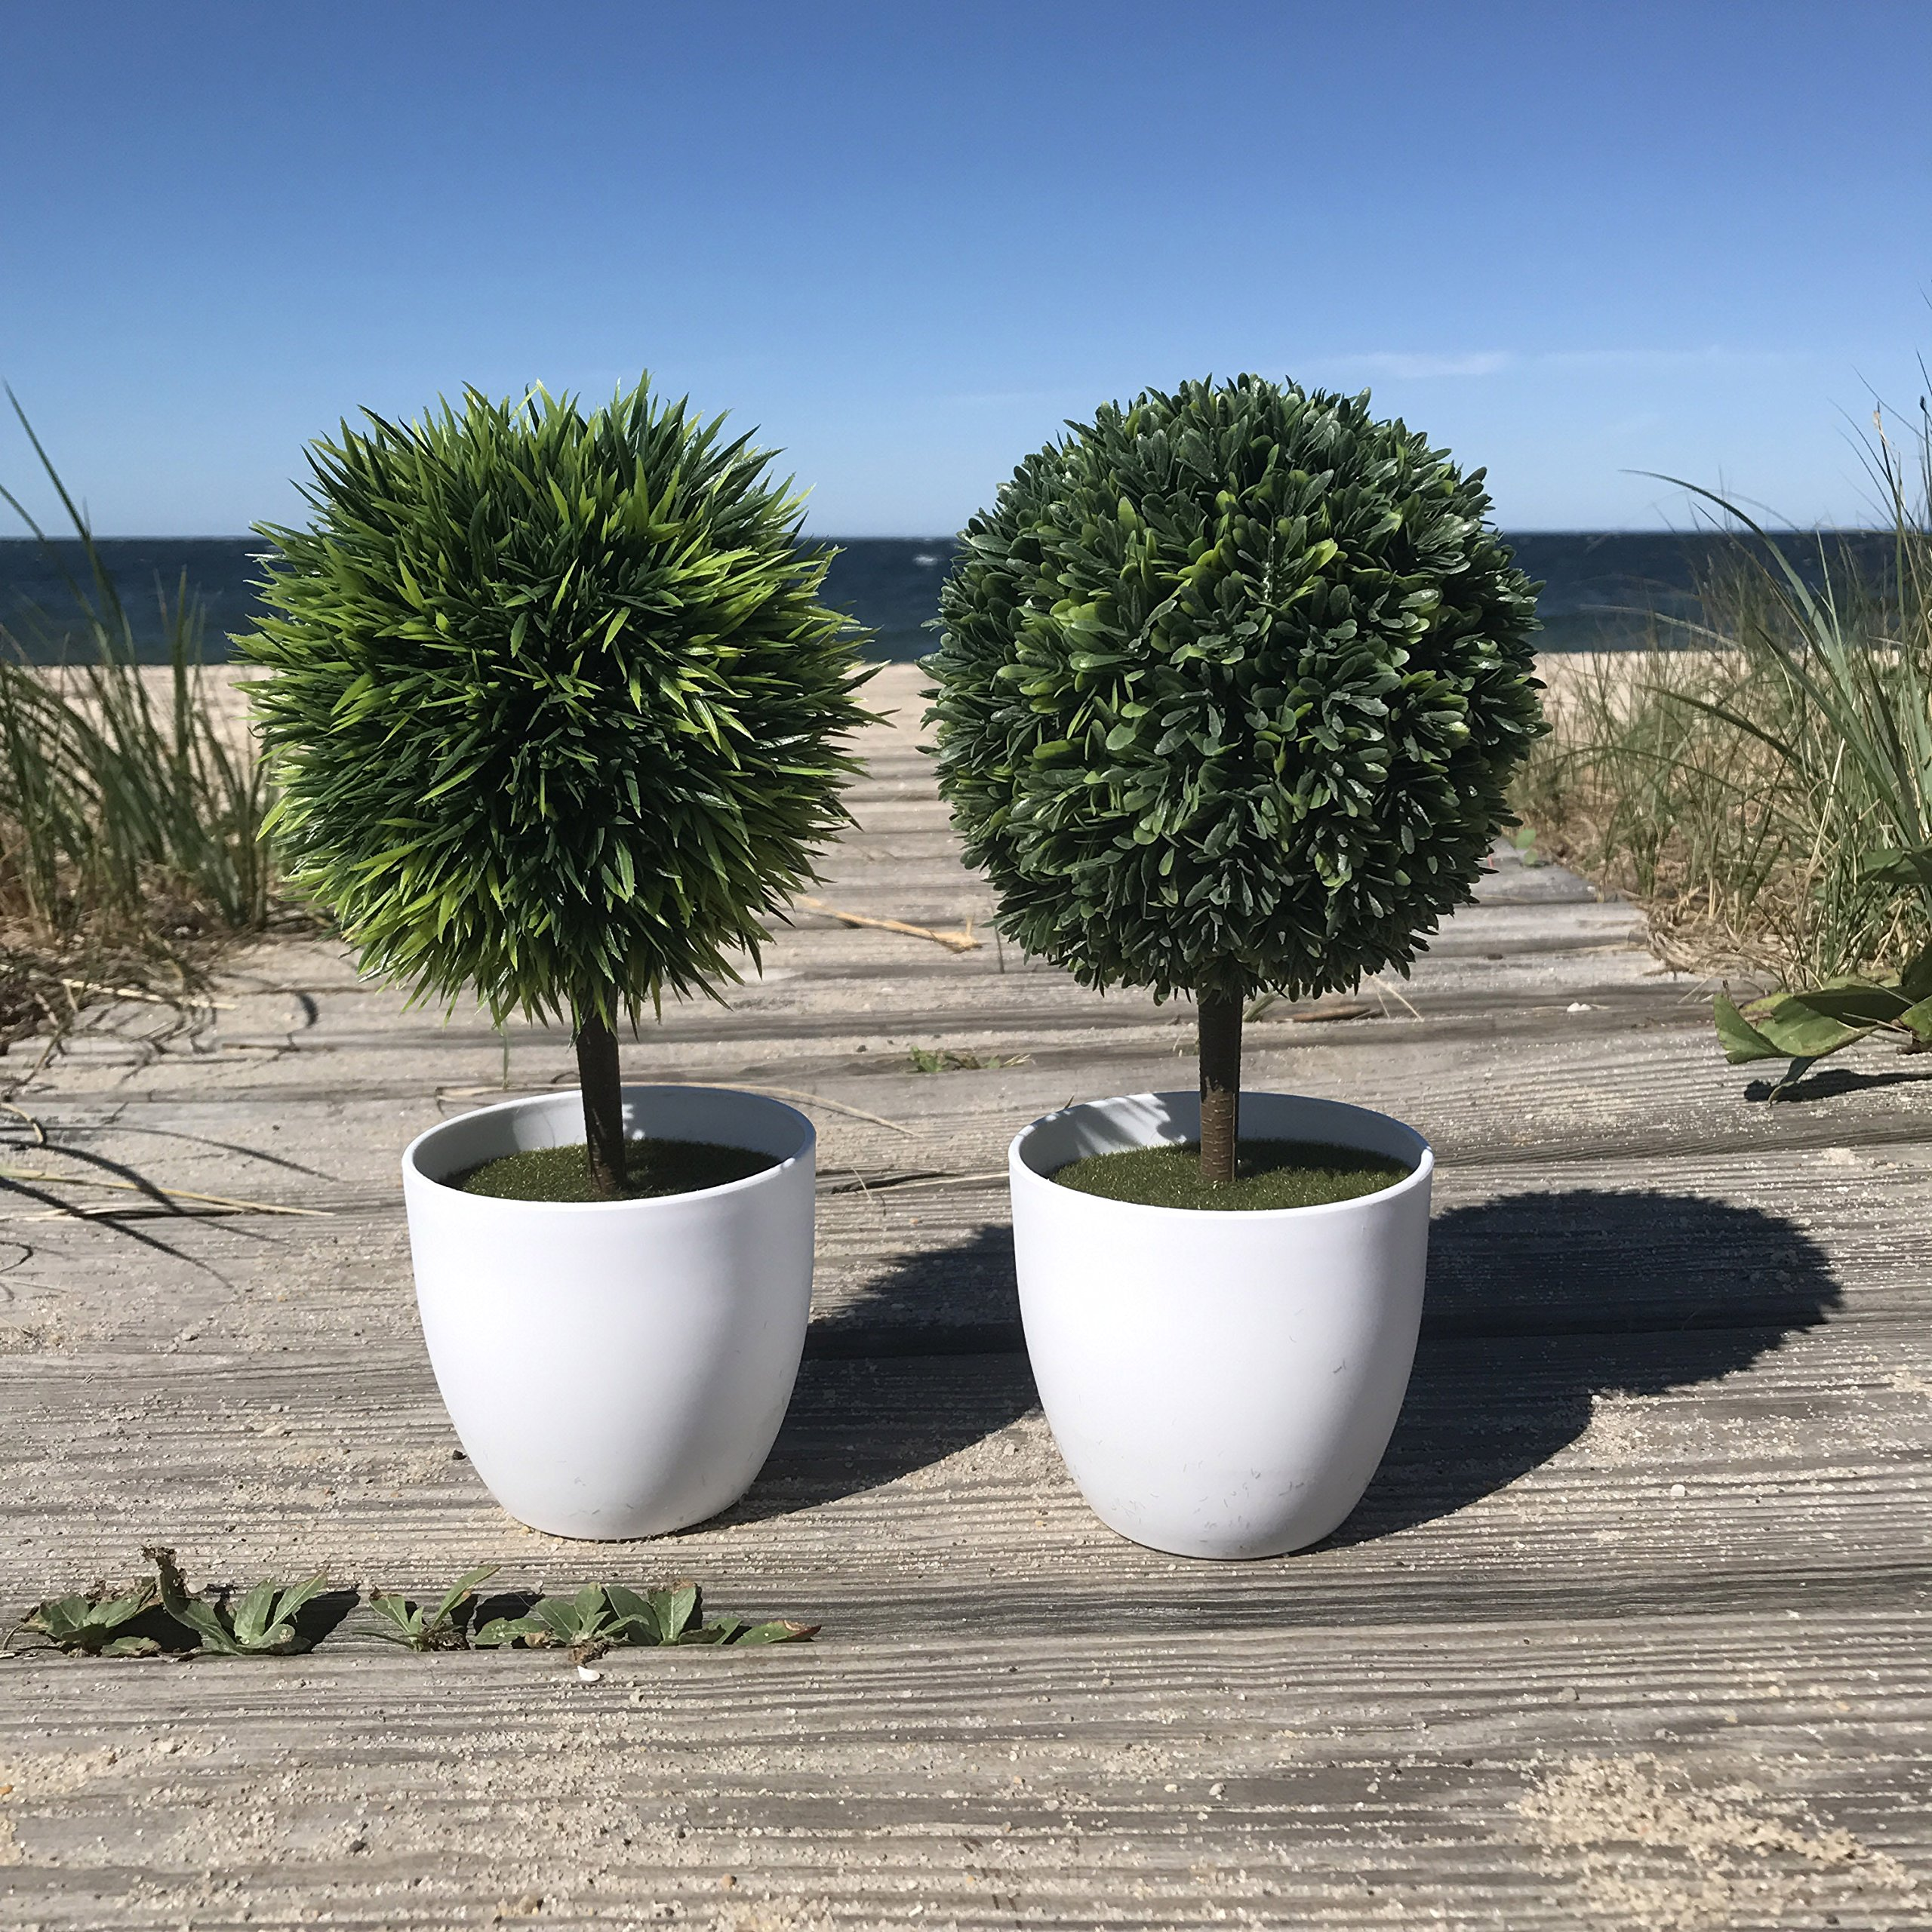 The Realistic Faux Mini Ball Topiary Tree Plants in White Pots, Set of 2, Includes 1 Boxwood Ball, 1 Grass Ball, 9 3/4 Inches Tall, Plastic, Gift Pack, By Whole House Worlds